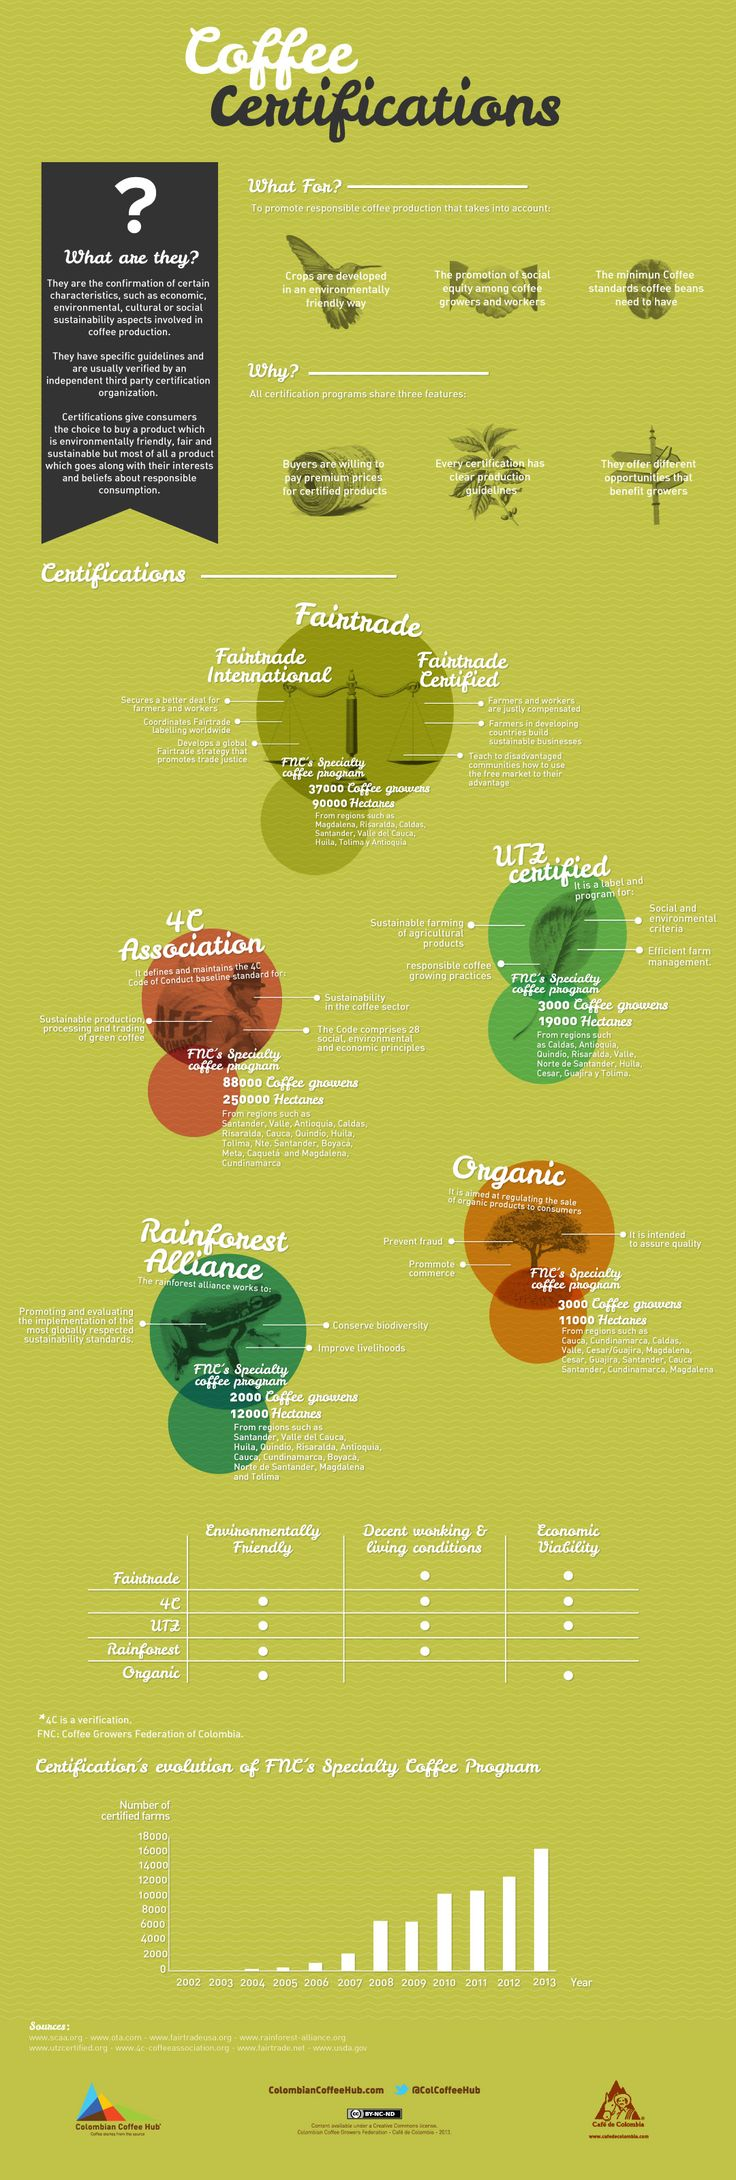 Coffee certifications are the confirmation of certain characteristics, such as economic, environmental, cultural or social sustainability aspects involved in coffee production.   Here you can see what for, why and some types of coffee certifications.   Don't forget to share it to all your coffee lovers friends.  We expect you at www.colombiancoffeehub.com